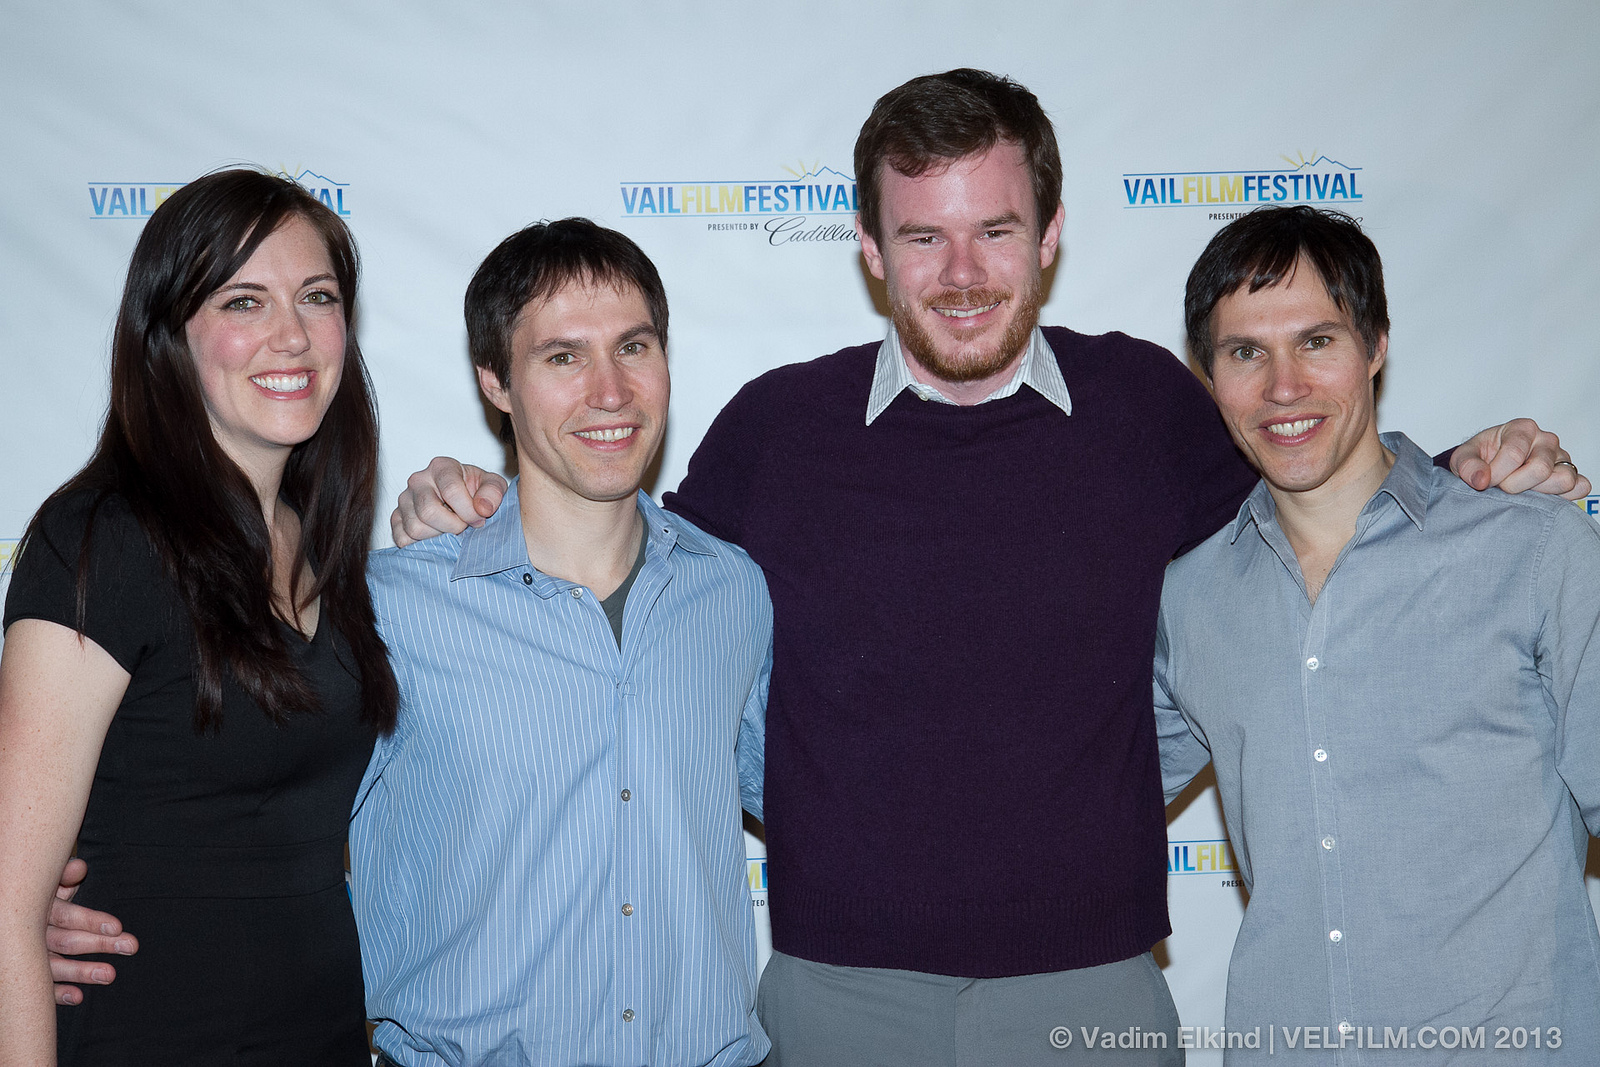 Megen-Musegades, Sean-Cross, Joe-Swanberg, Scott-Cross.jpg